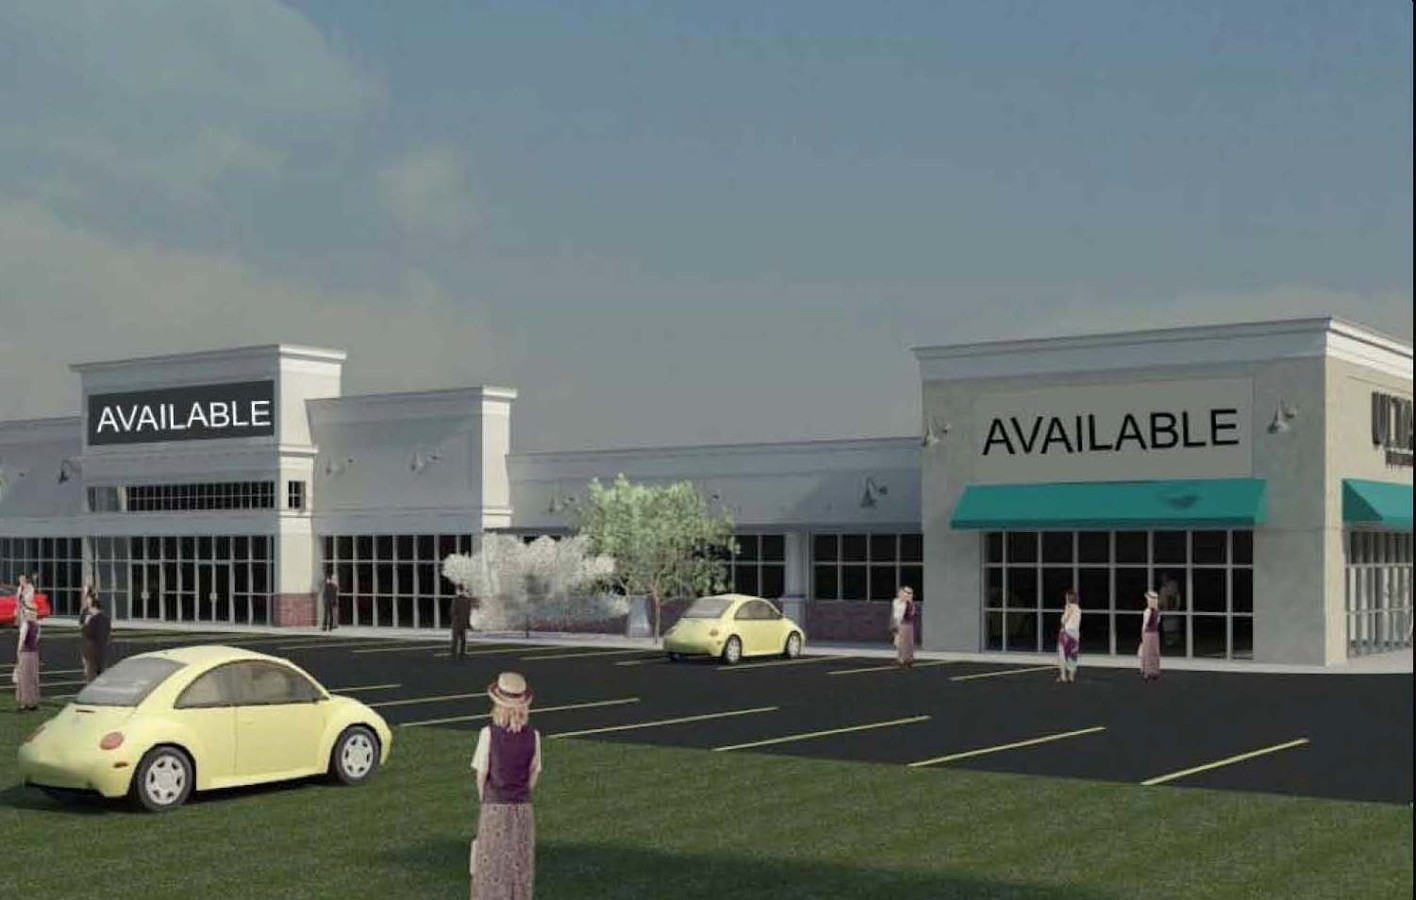 Maywood Ave Maywood Nj 07607 Retail Space For Lease